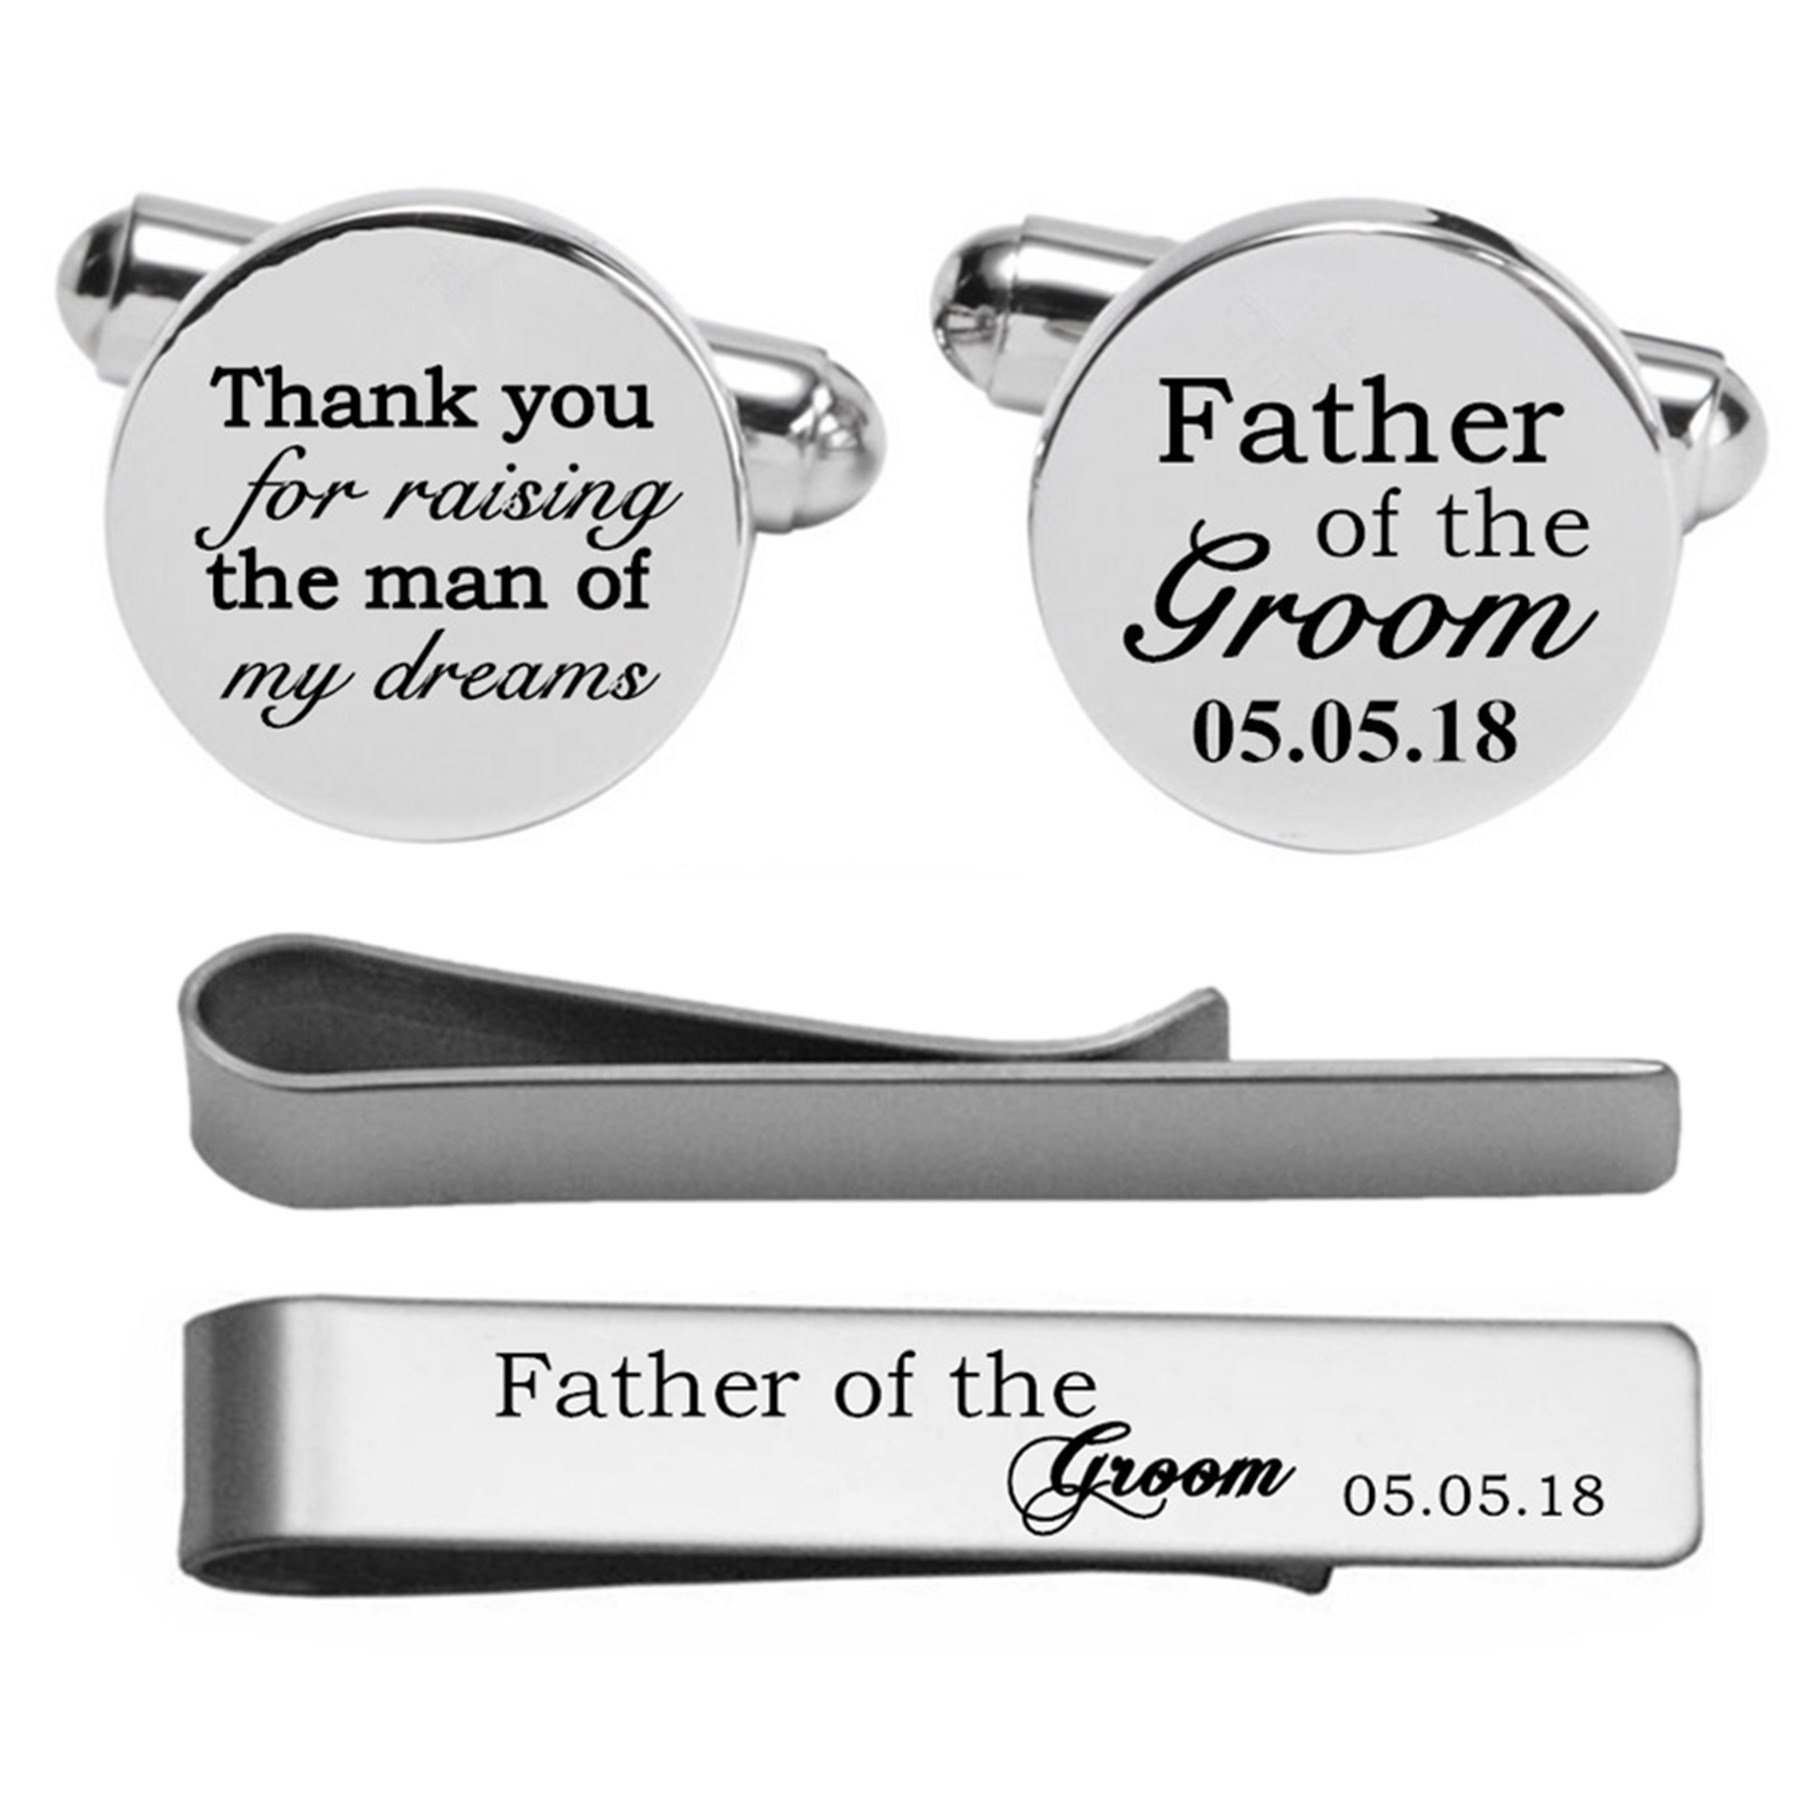 Kooer Engraved Cuff Links For Father of the Groom Custom Personalized Cuff Links Vintage Wedding Jewelry (Silver plated cufflinks)